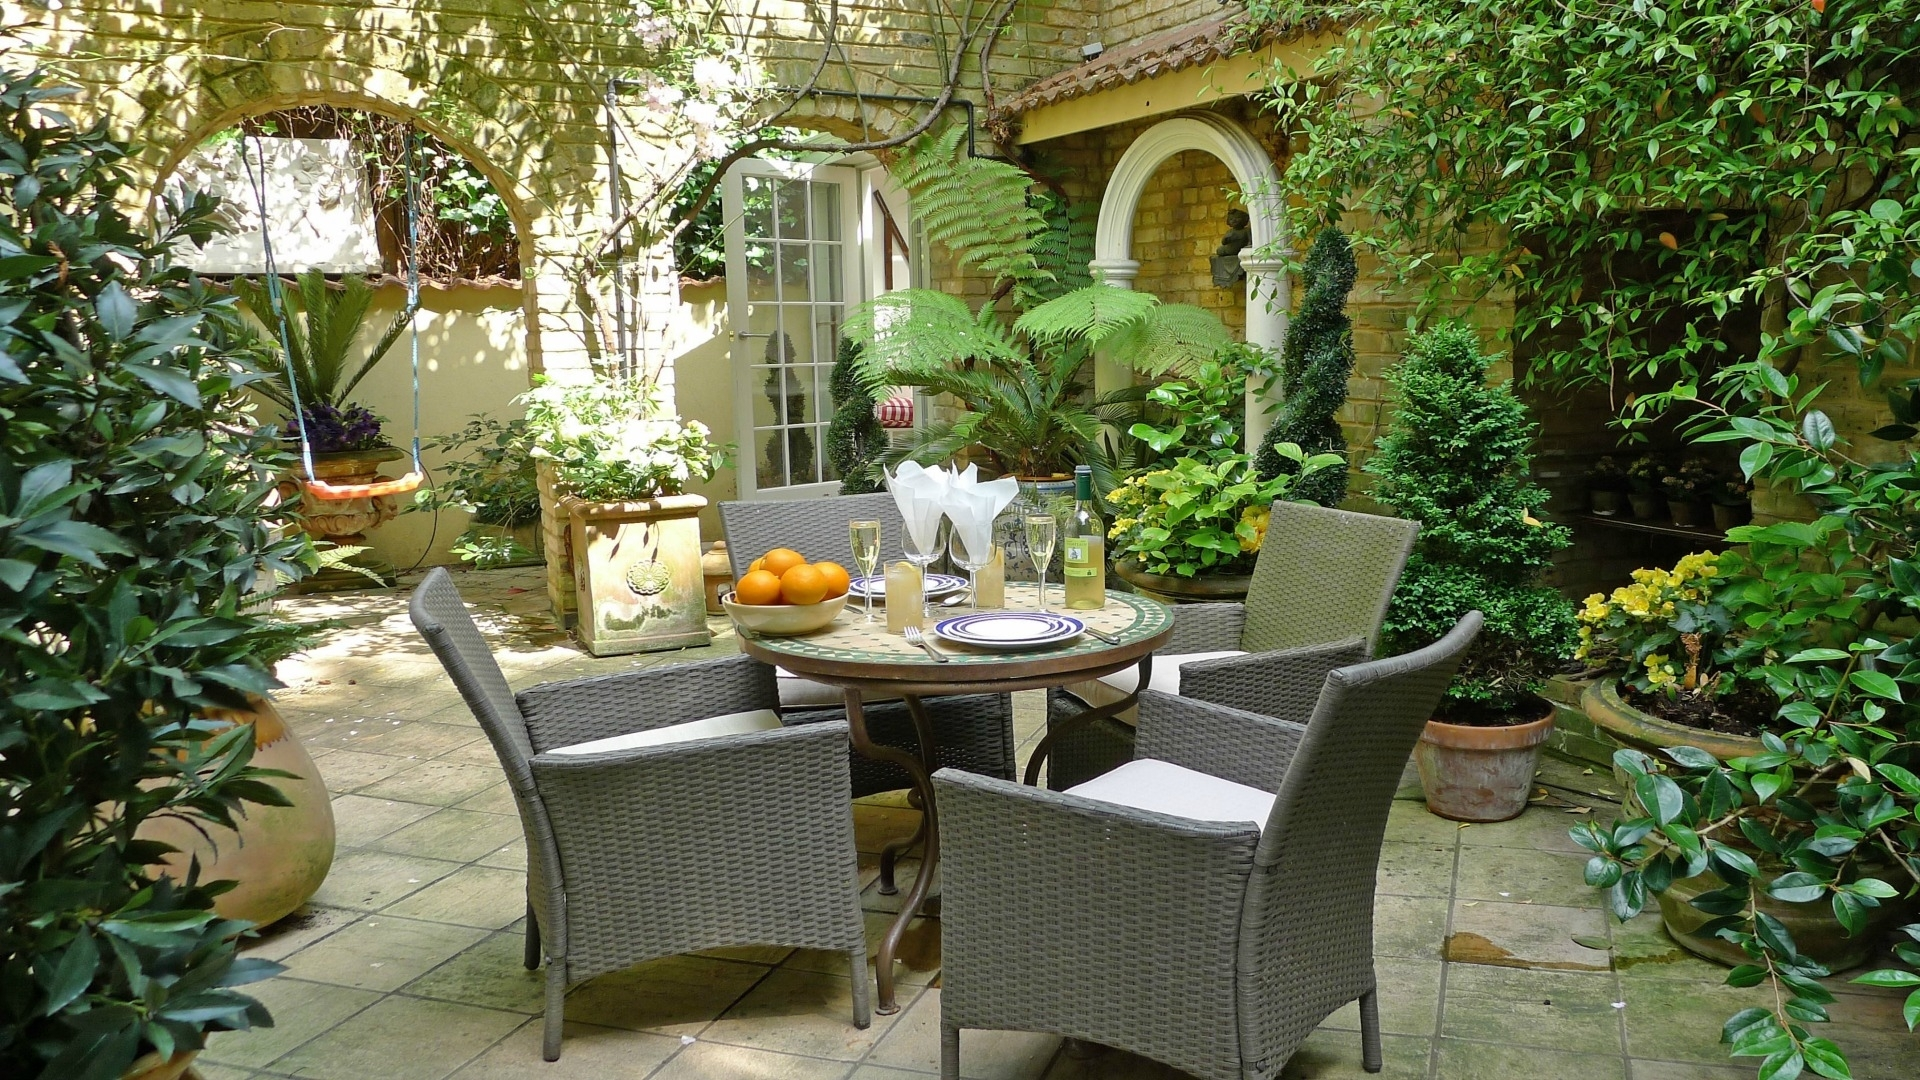 London Vacation Rentals - Search Results - London Perfect pertaining to Courtyard Garden Apartments